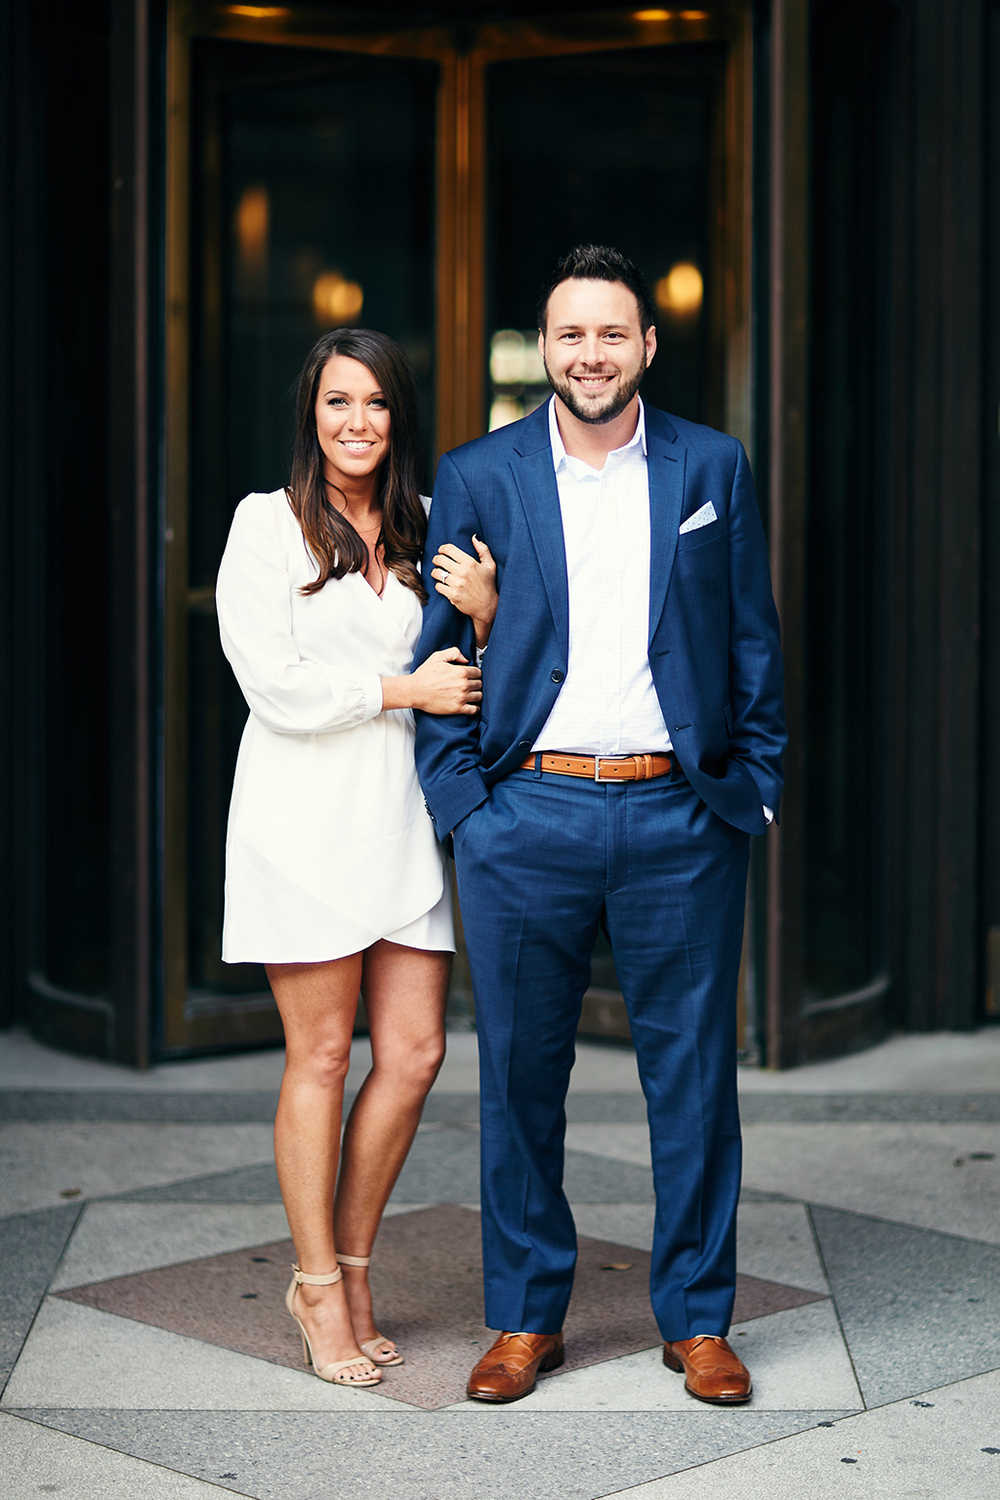 Downtown Washington Avenue Forest Park Engagement Session by St Louis Wedding Photographers Oldani Photography 4.jpg